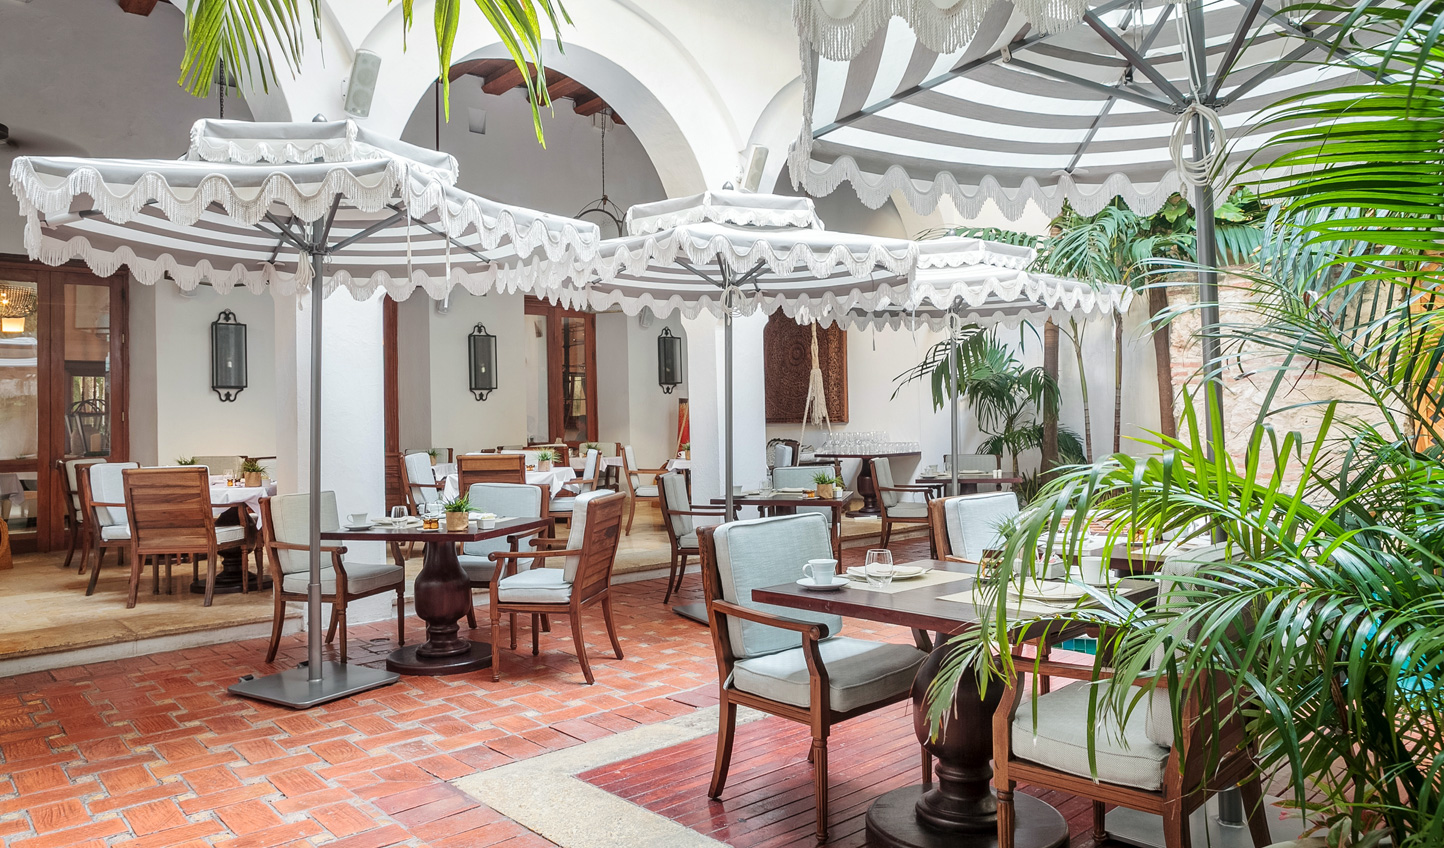 Dine out in the charm of the courtyard